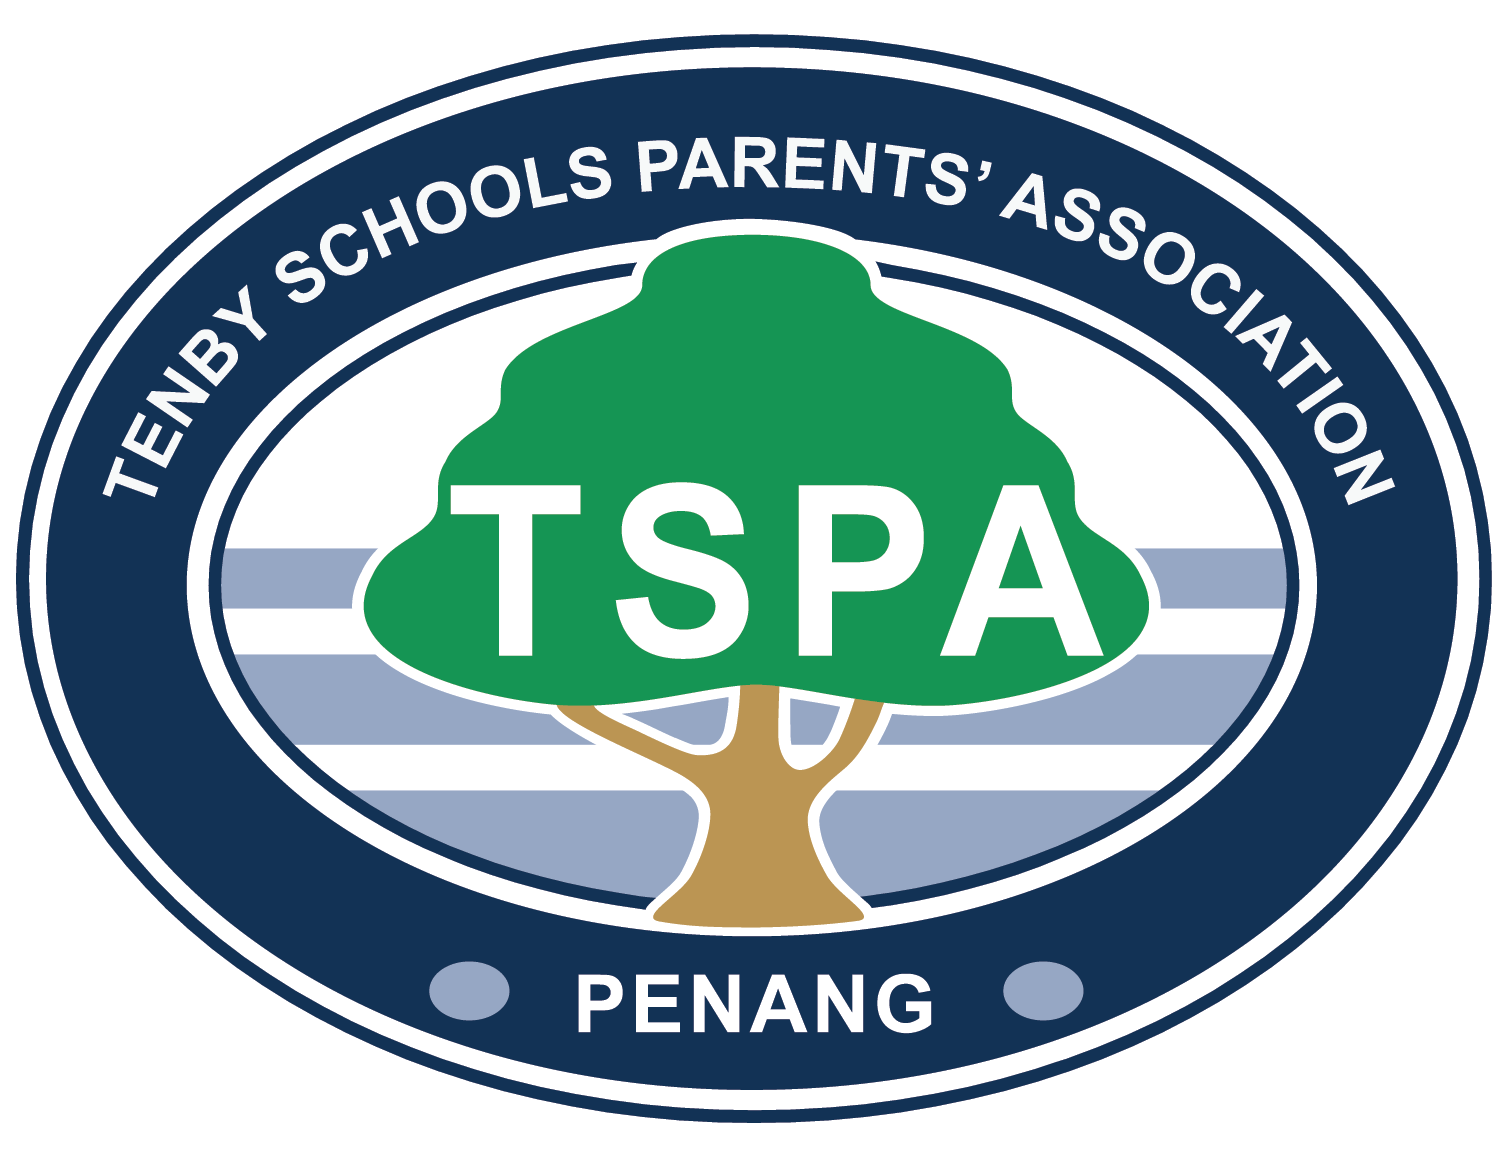 Tenby Schools Parents' Association (Penang)